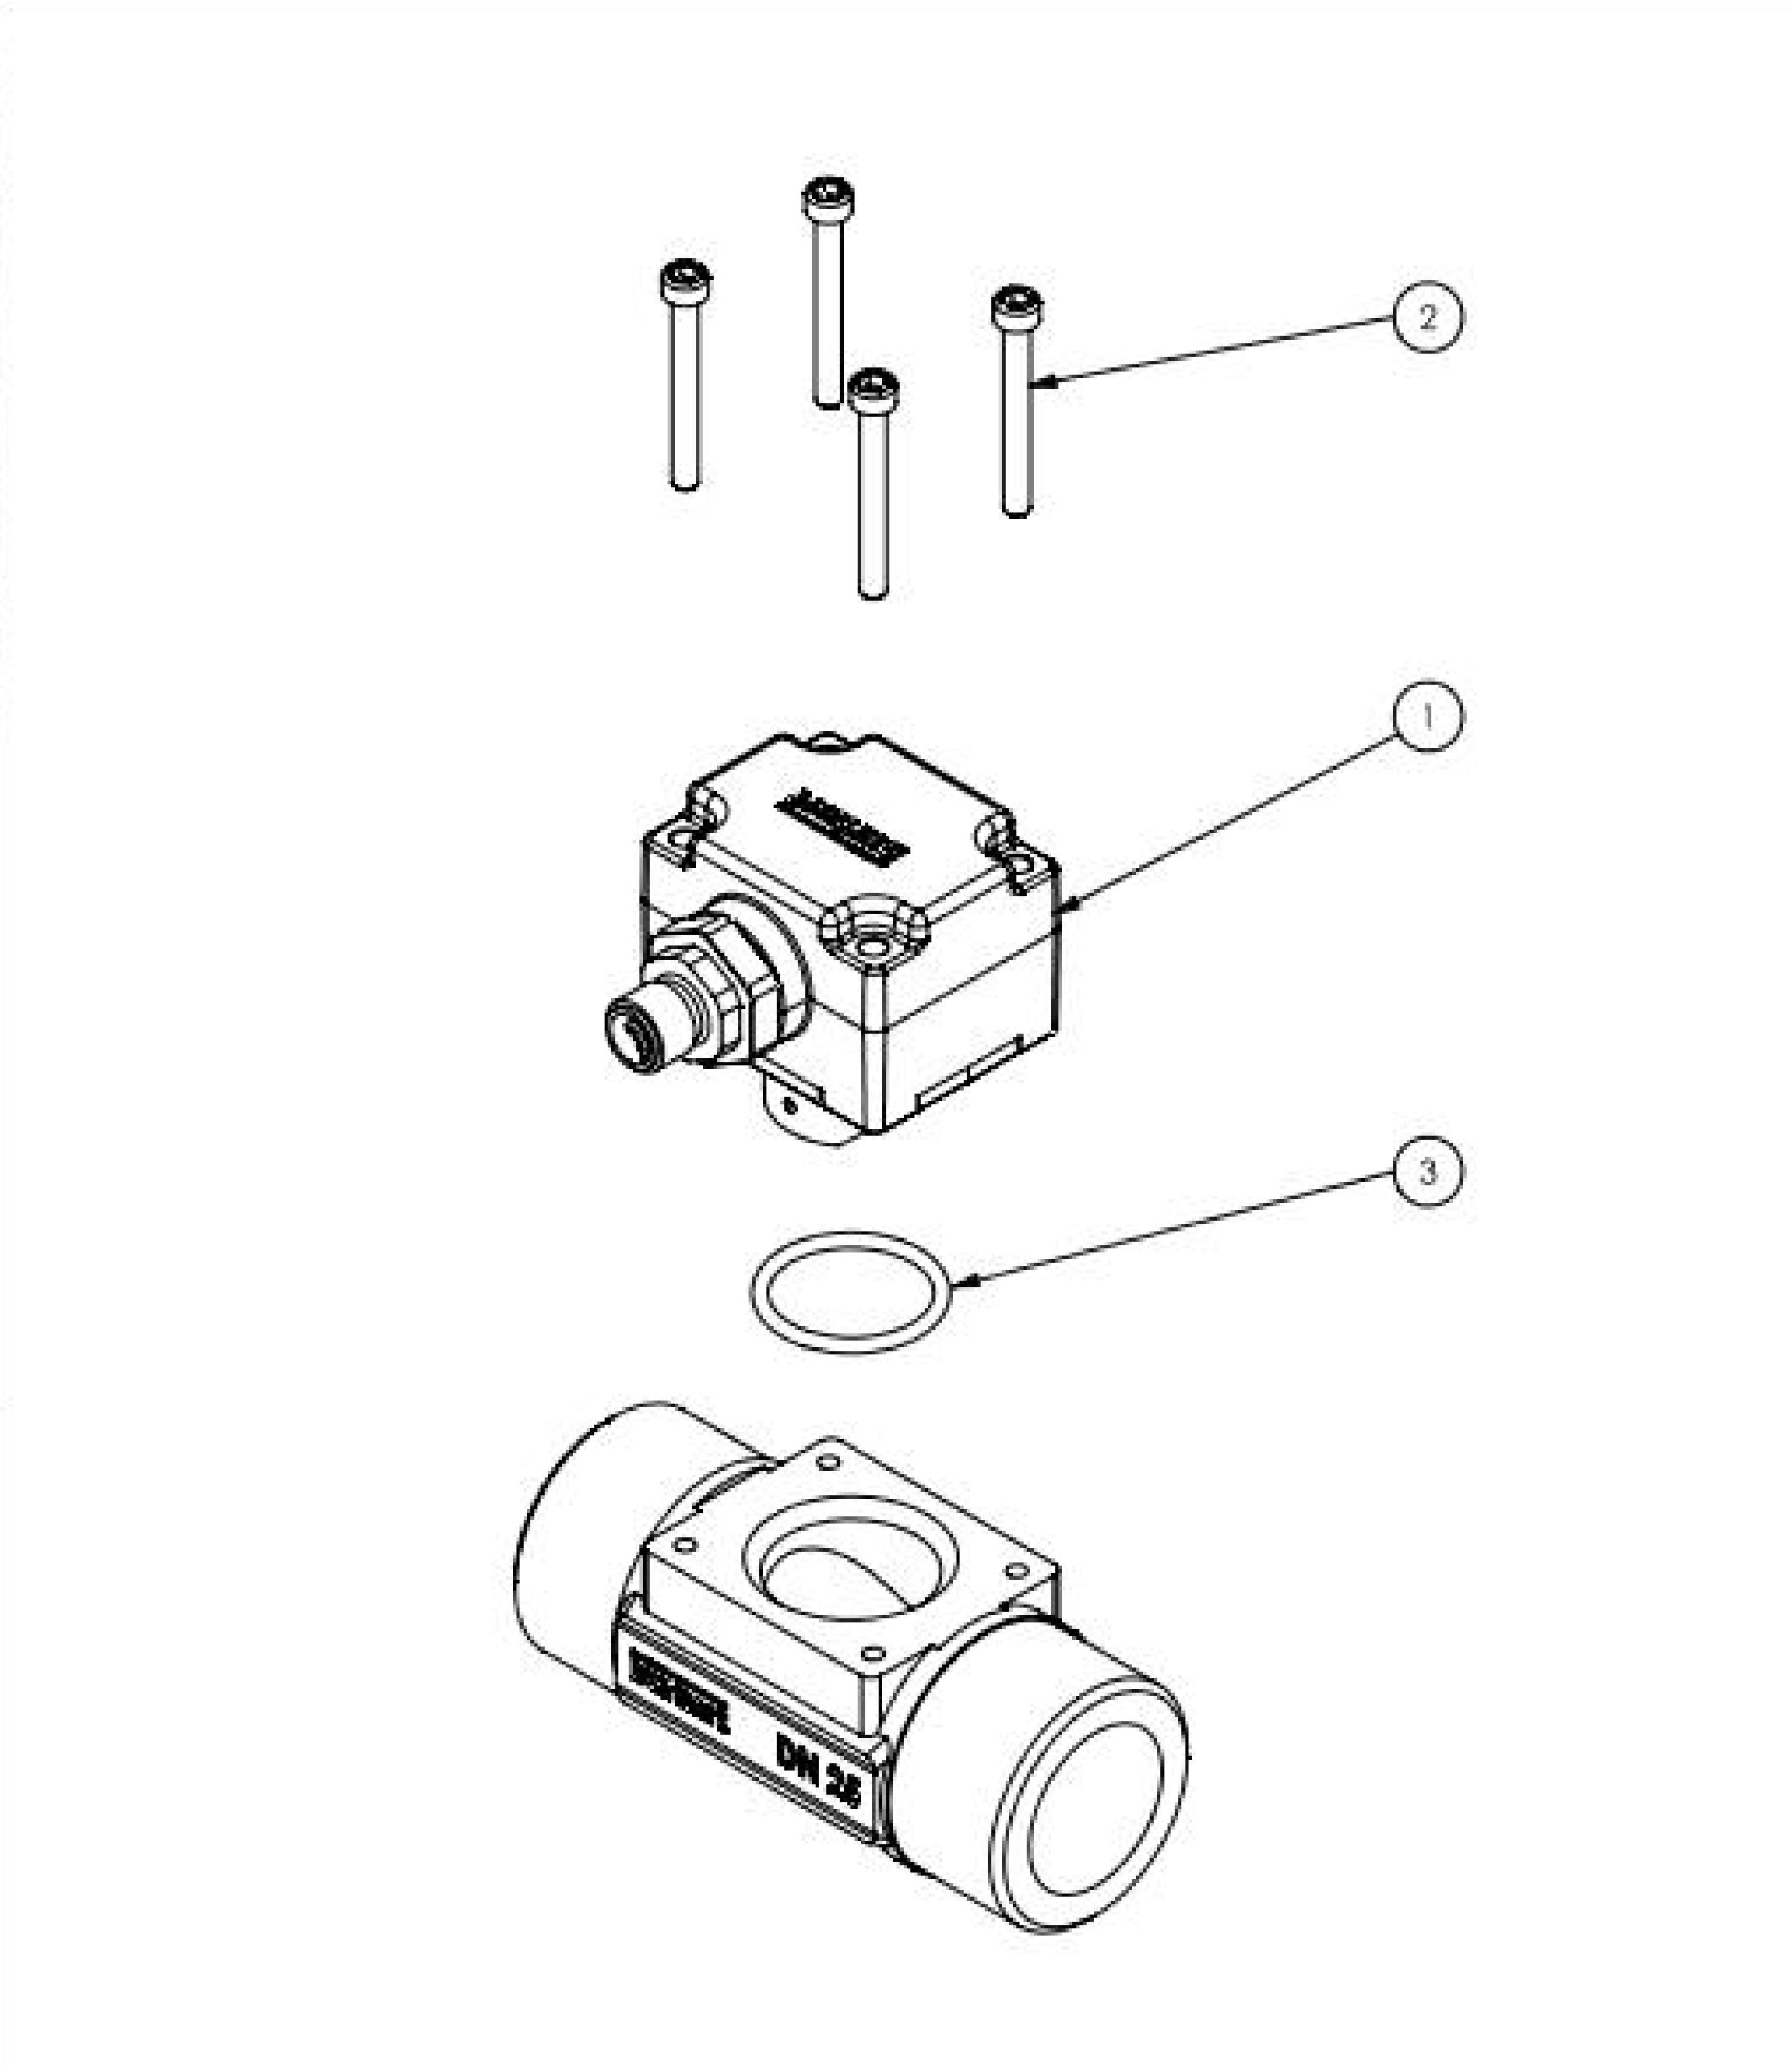 burkert 8025 flow transmitter manual